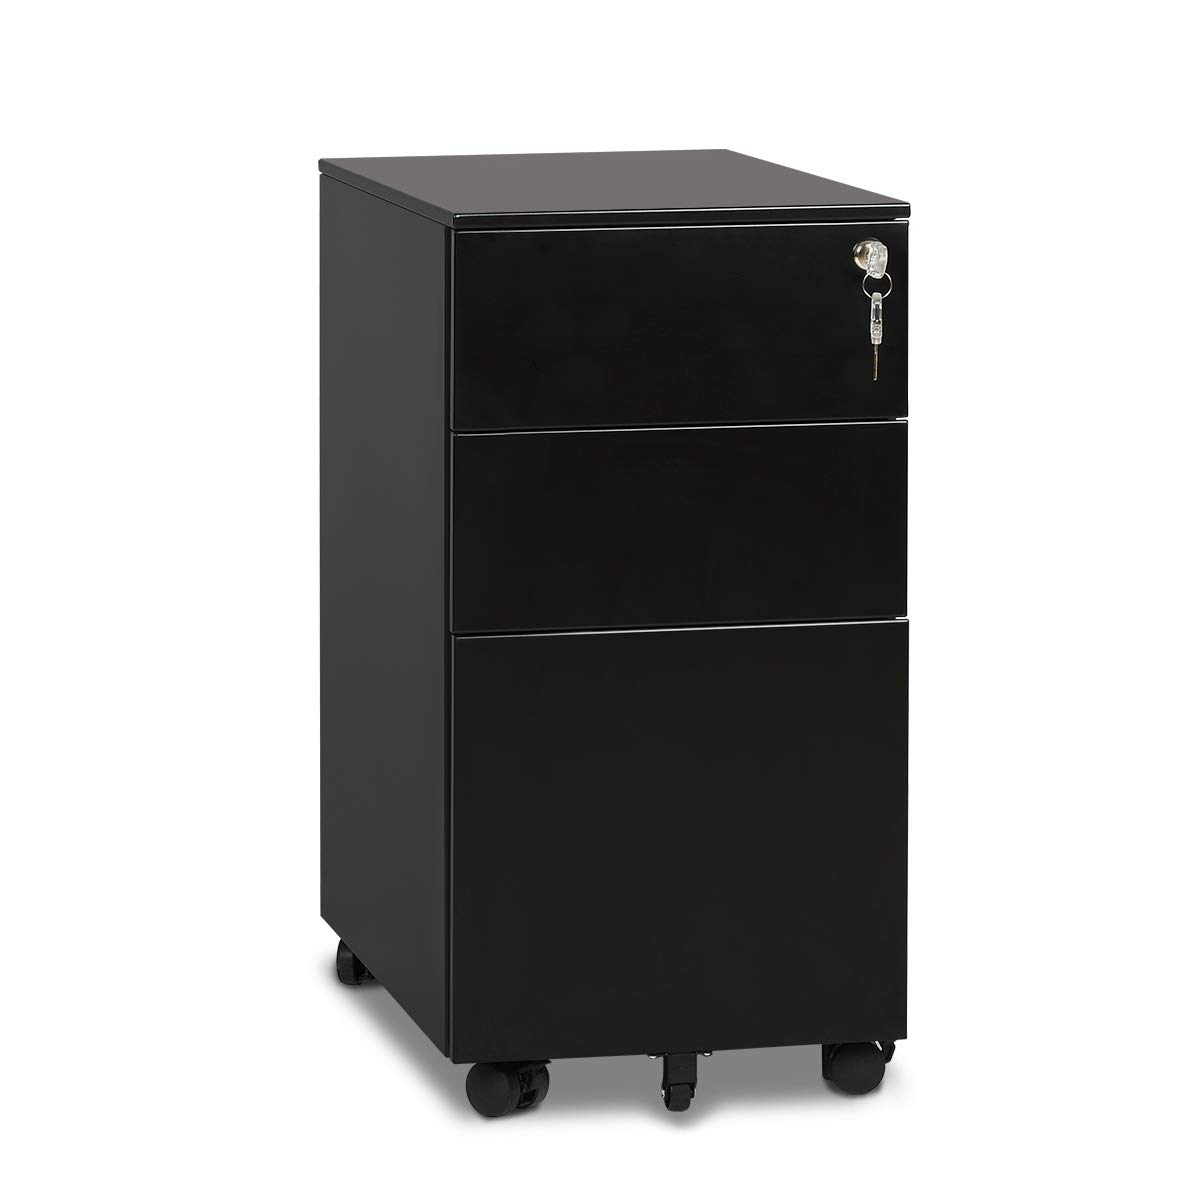 DEVAISE 3 Drawer Metal File Cabinet with Lock in Black (15.4